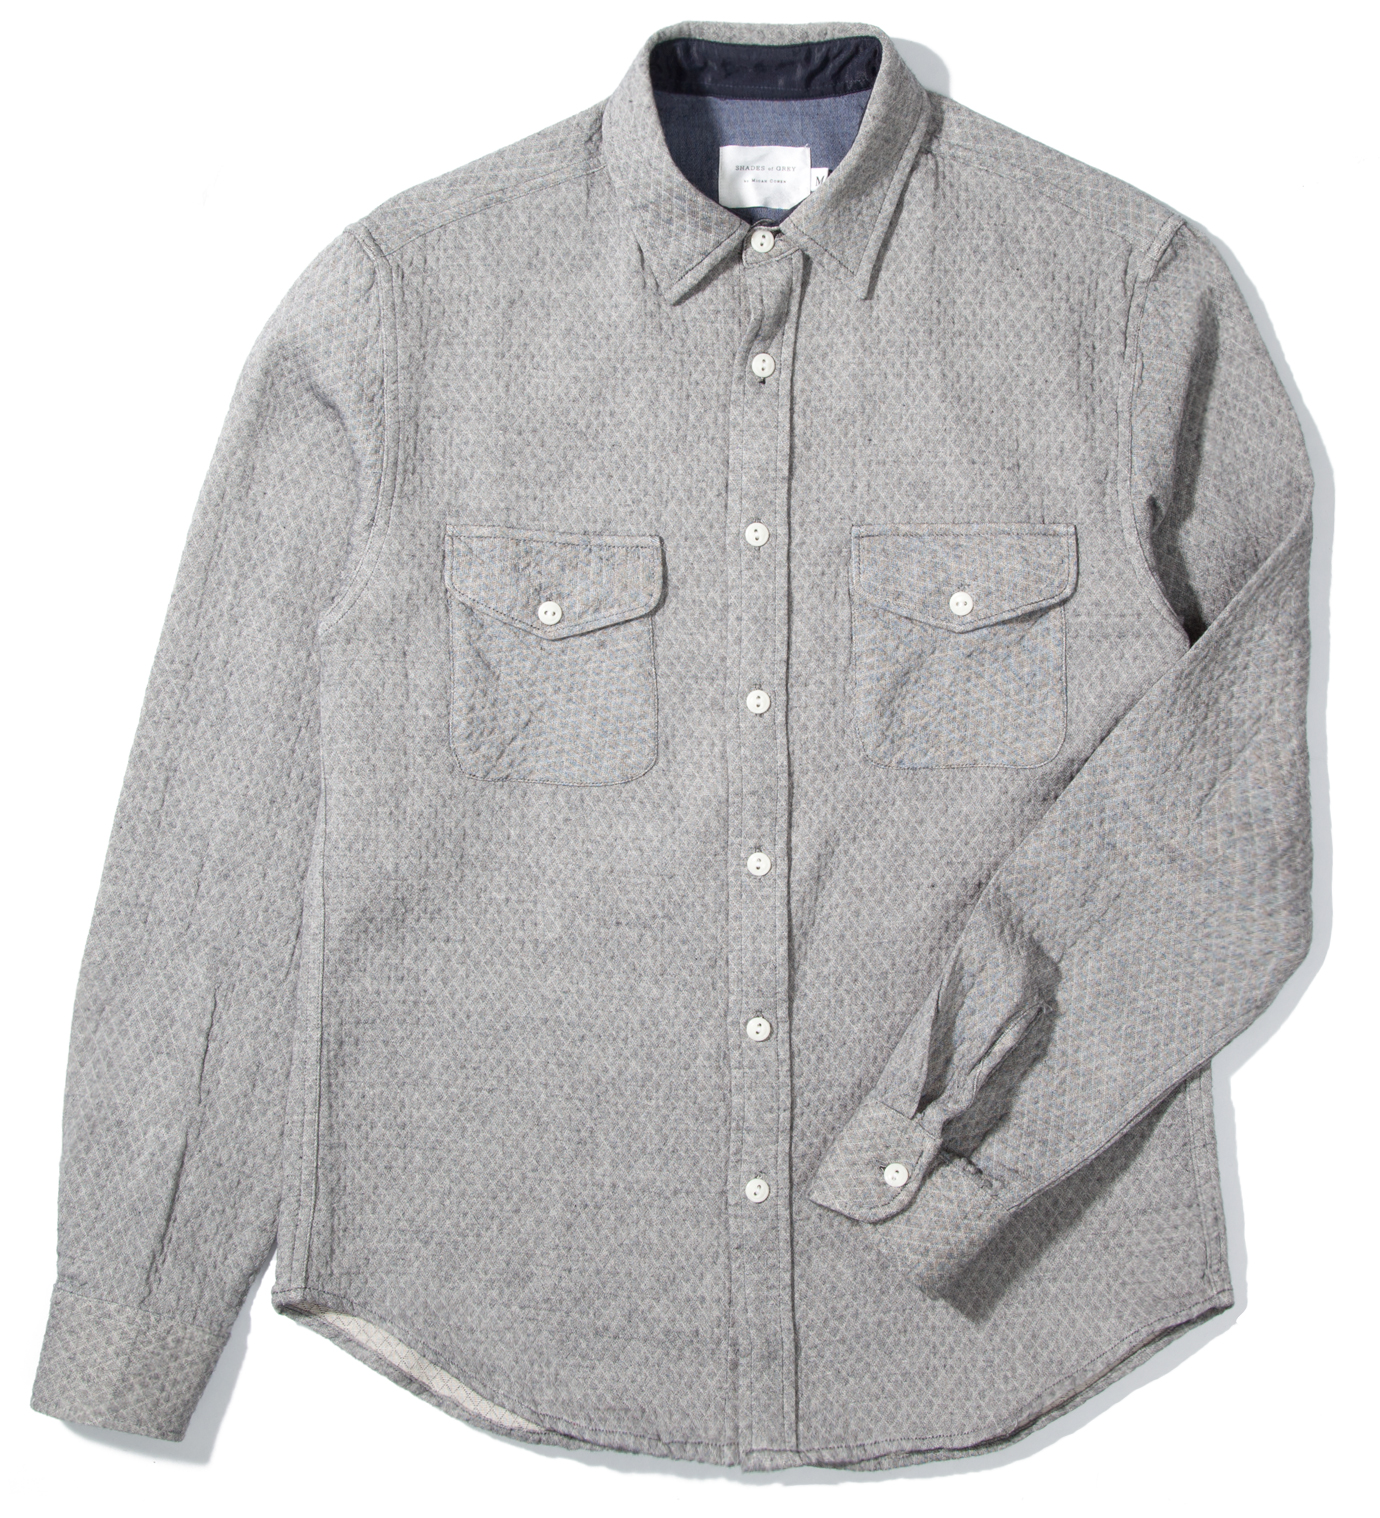 Shades of Grey by Micah Cohen Grey Diamond 2 Pocket Shirt